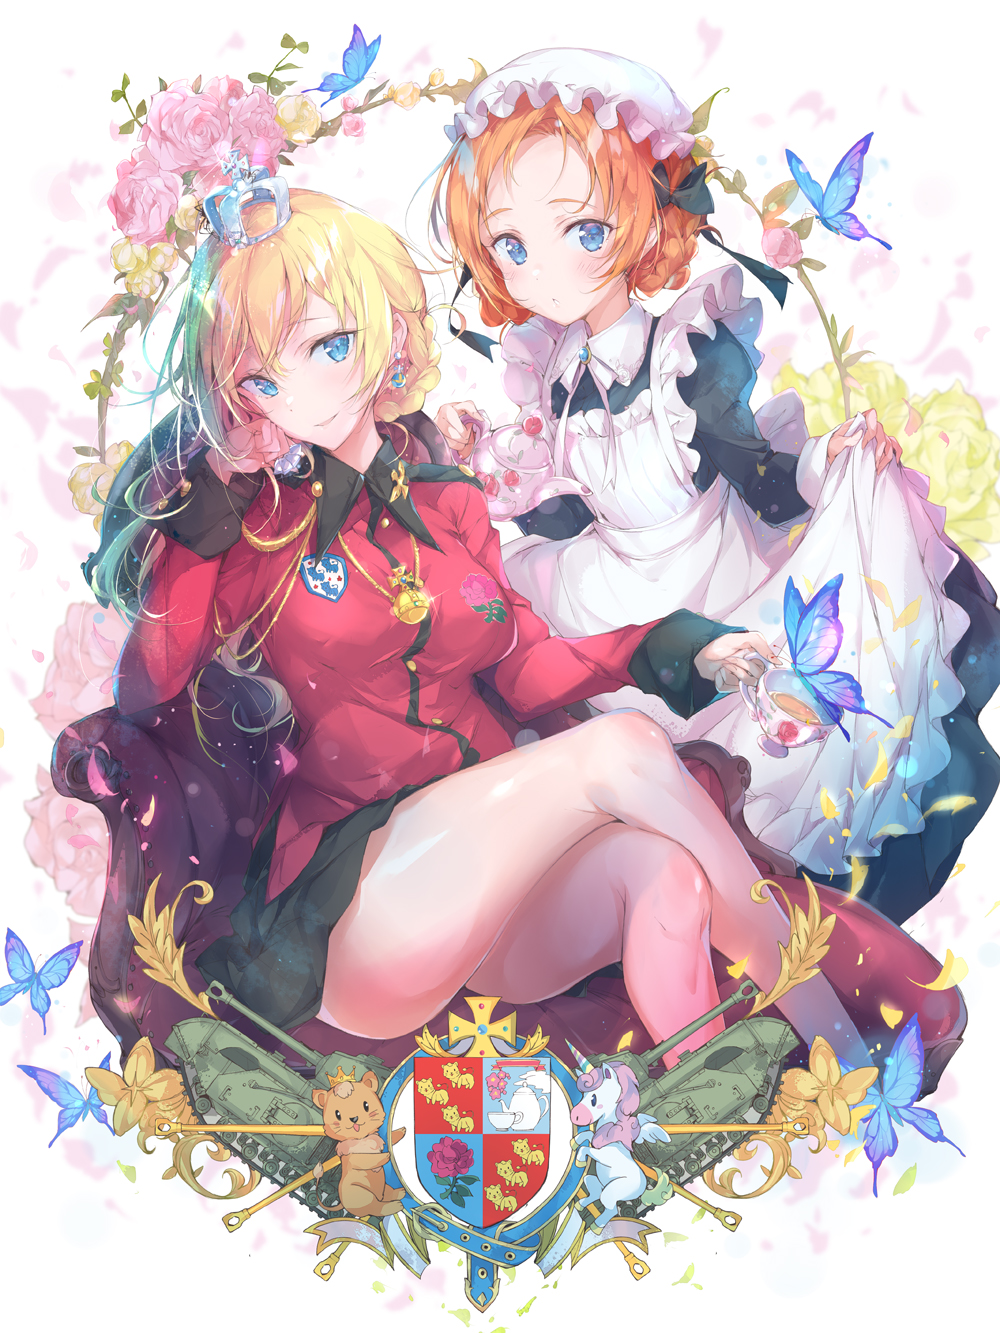 2girls alternate_costume apron blonde_hair blue_eyes breasts bug butterfly cheek_rest coat_of_arms crossed_legs cup darjeeling_(girls_und_panzer) enmaided flower girls_und_panzer highres insect maid maid_apron maid_headdress medium_breasts multiple_girls orange_hair orange_pekoe_(girls_und_panzer) pulp_piroshi rose smile st._gloriana's_military_uniform teacup thighs unicorn_(azur_lane)